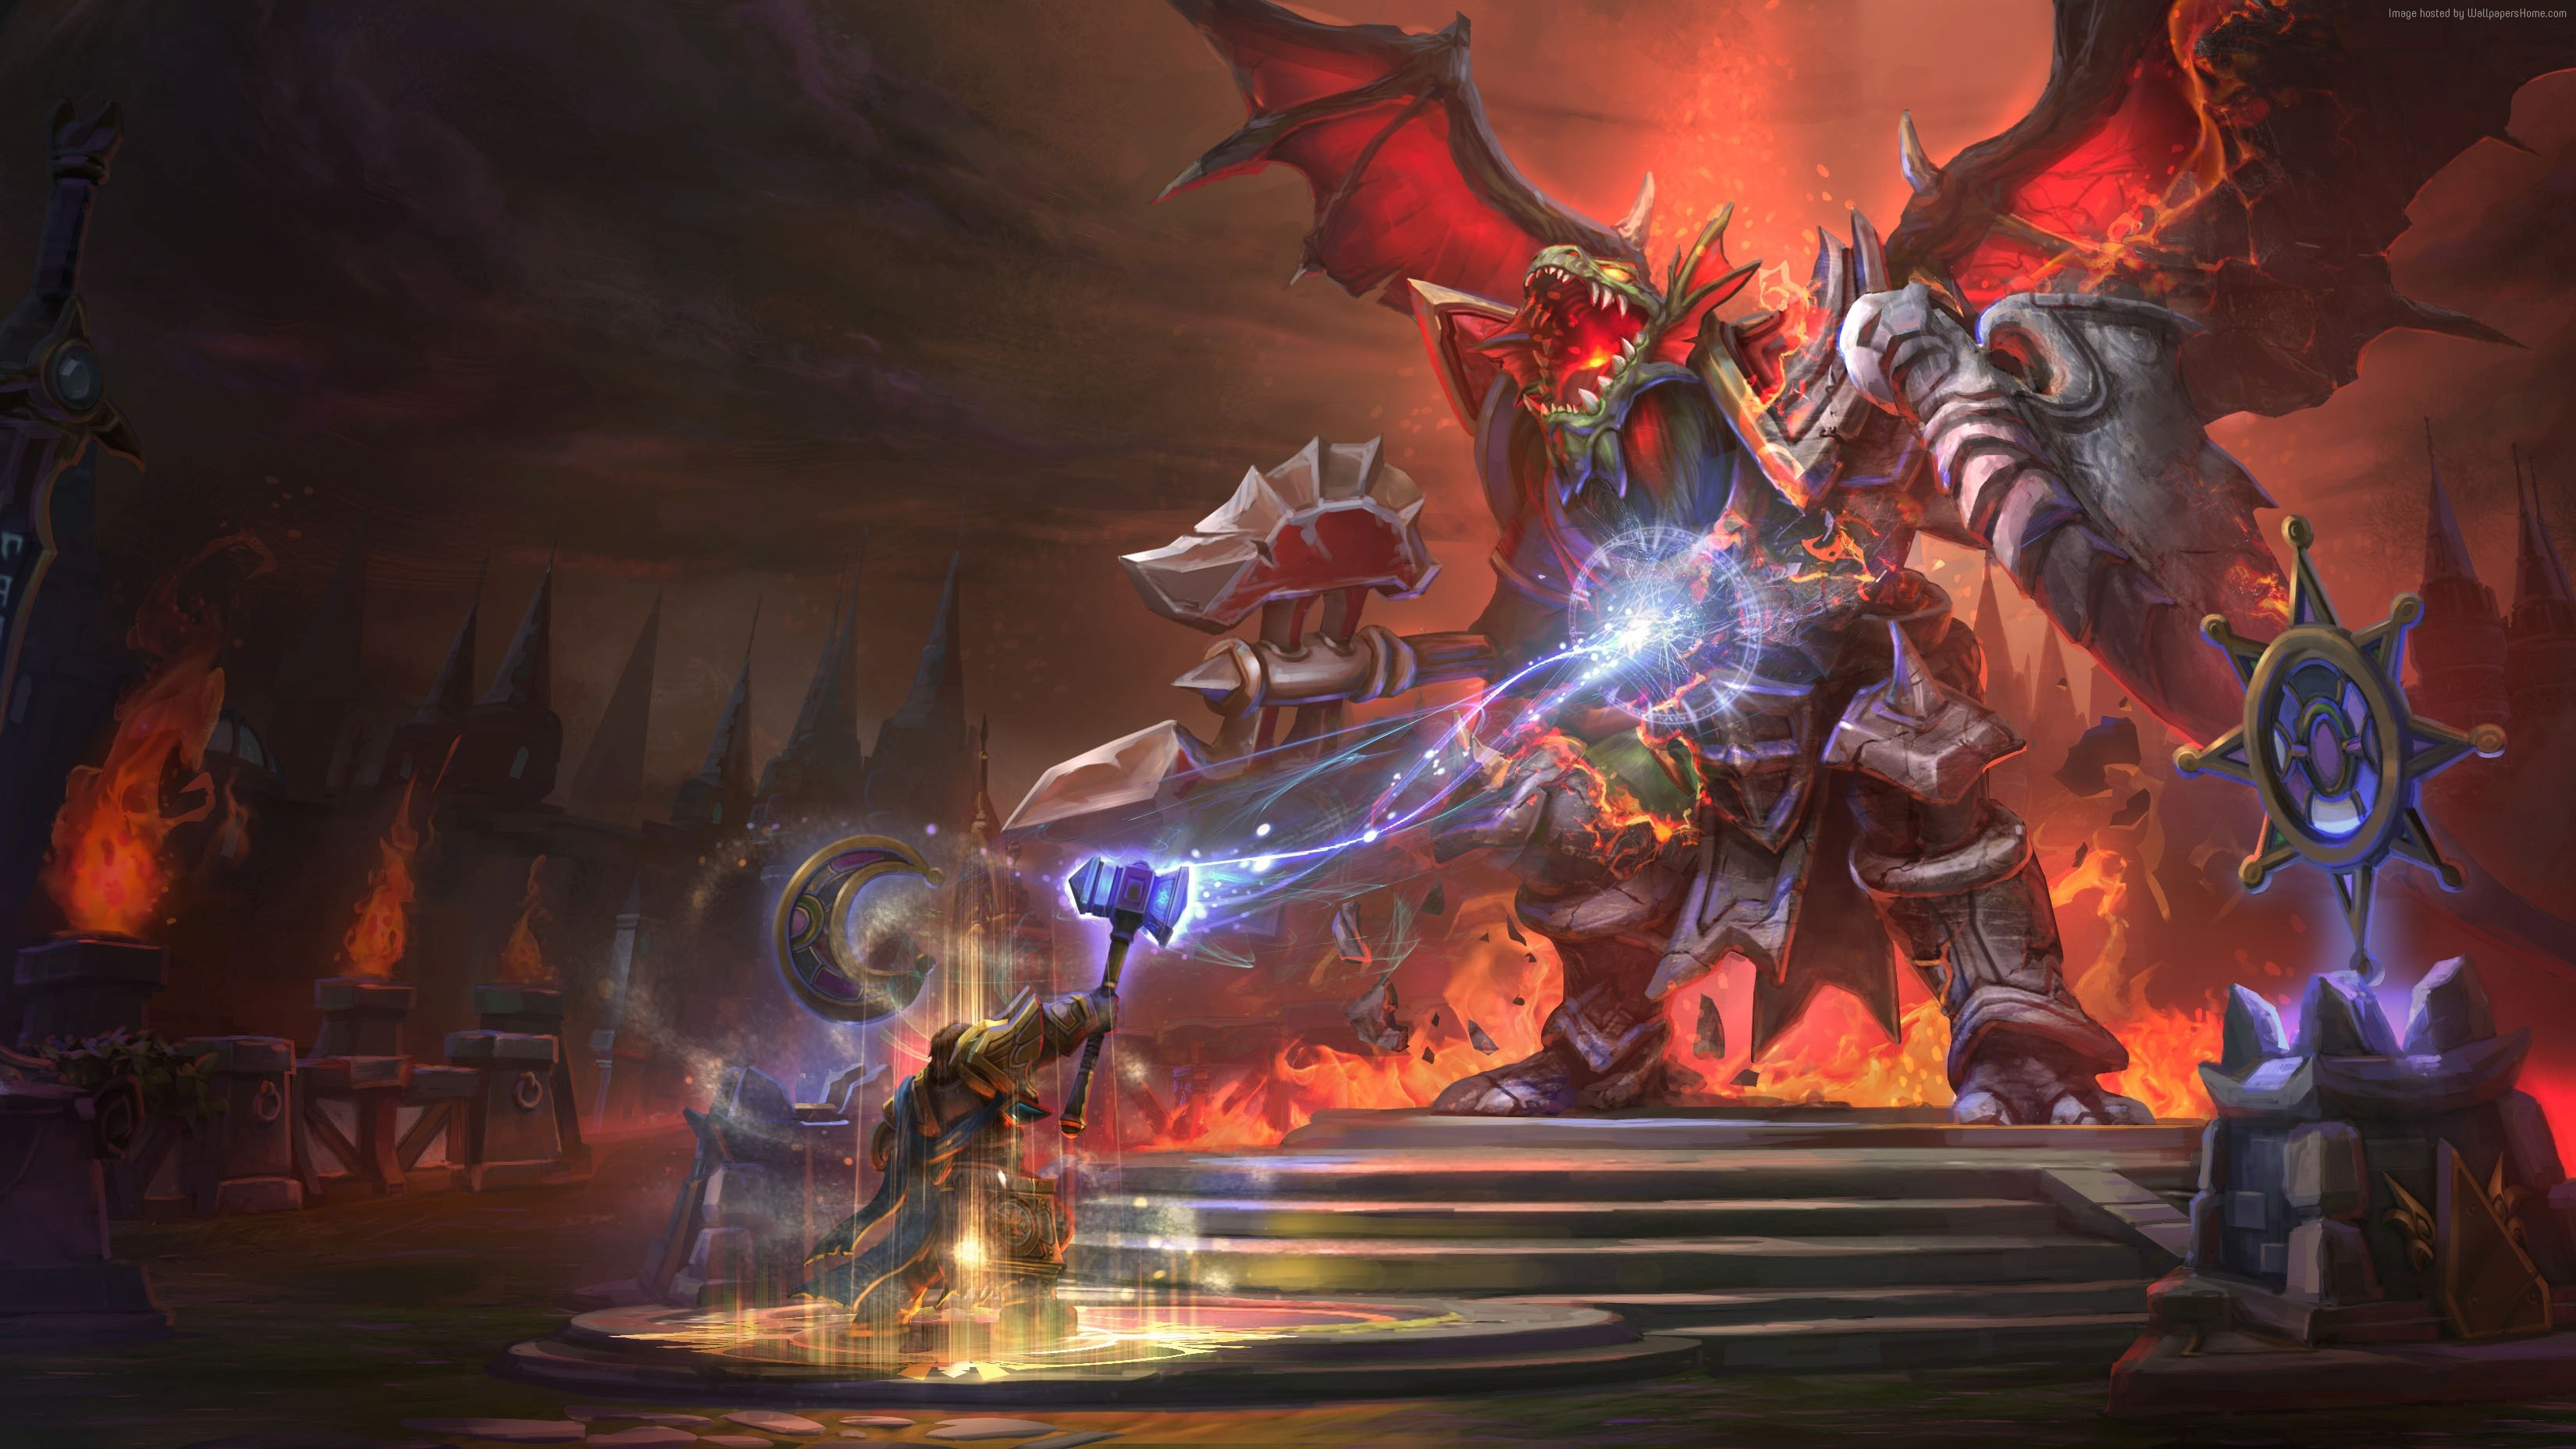 Free Download Heroes Of The Storm Wallpaper Games Strategy Heroes